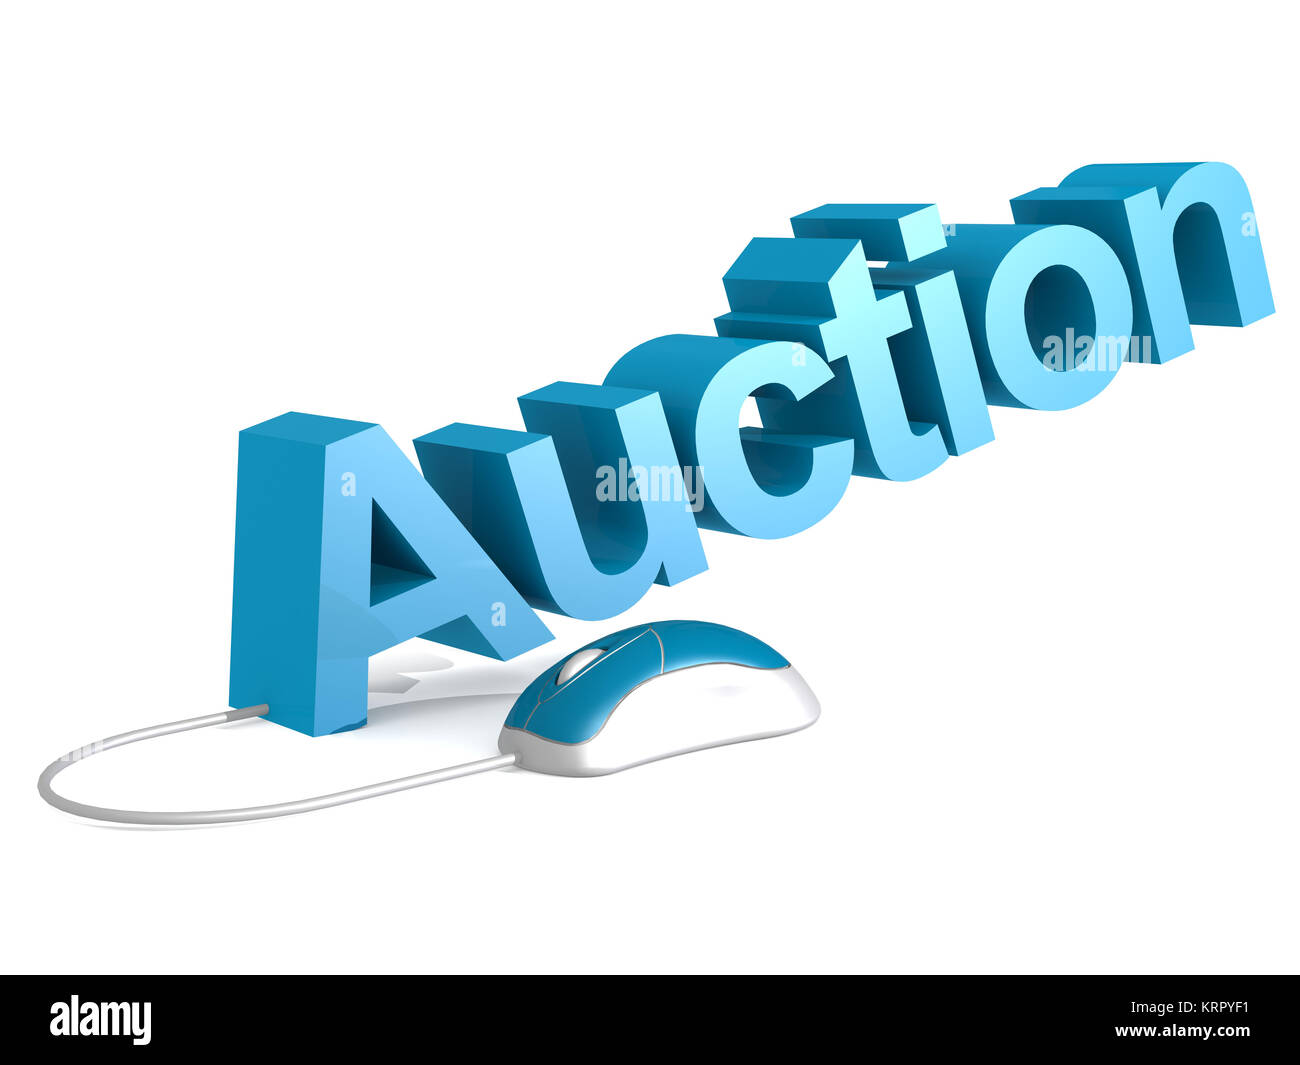 Mouse Flea Stock Photos Images Alamy Origami Instructionsorigami Diagramorigami Mickey Auction Word With Blue Image